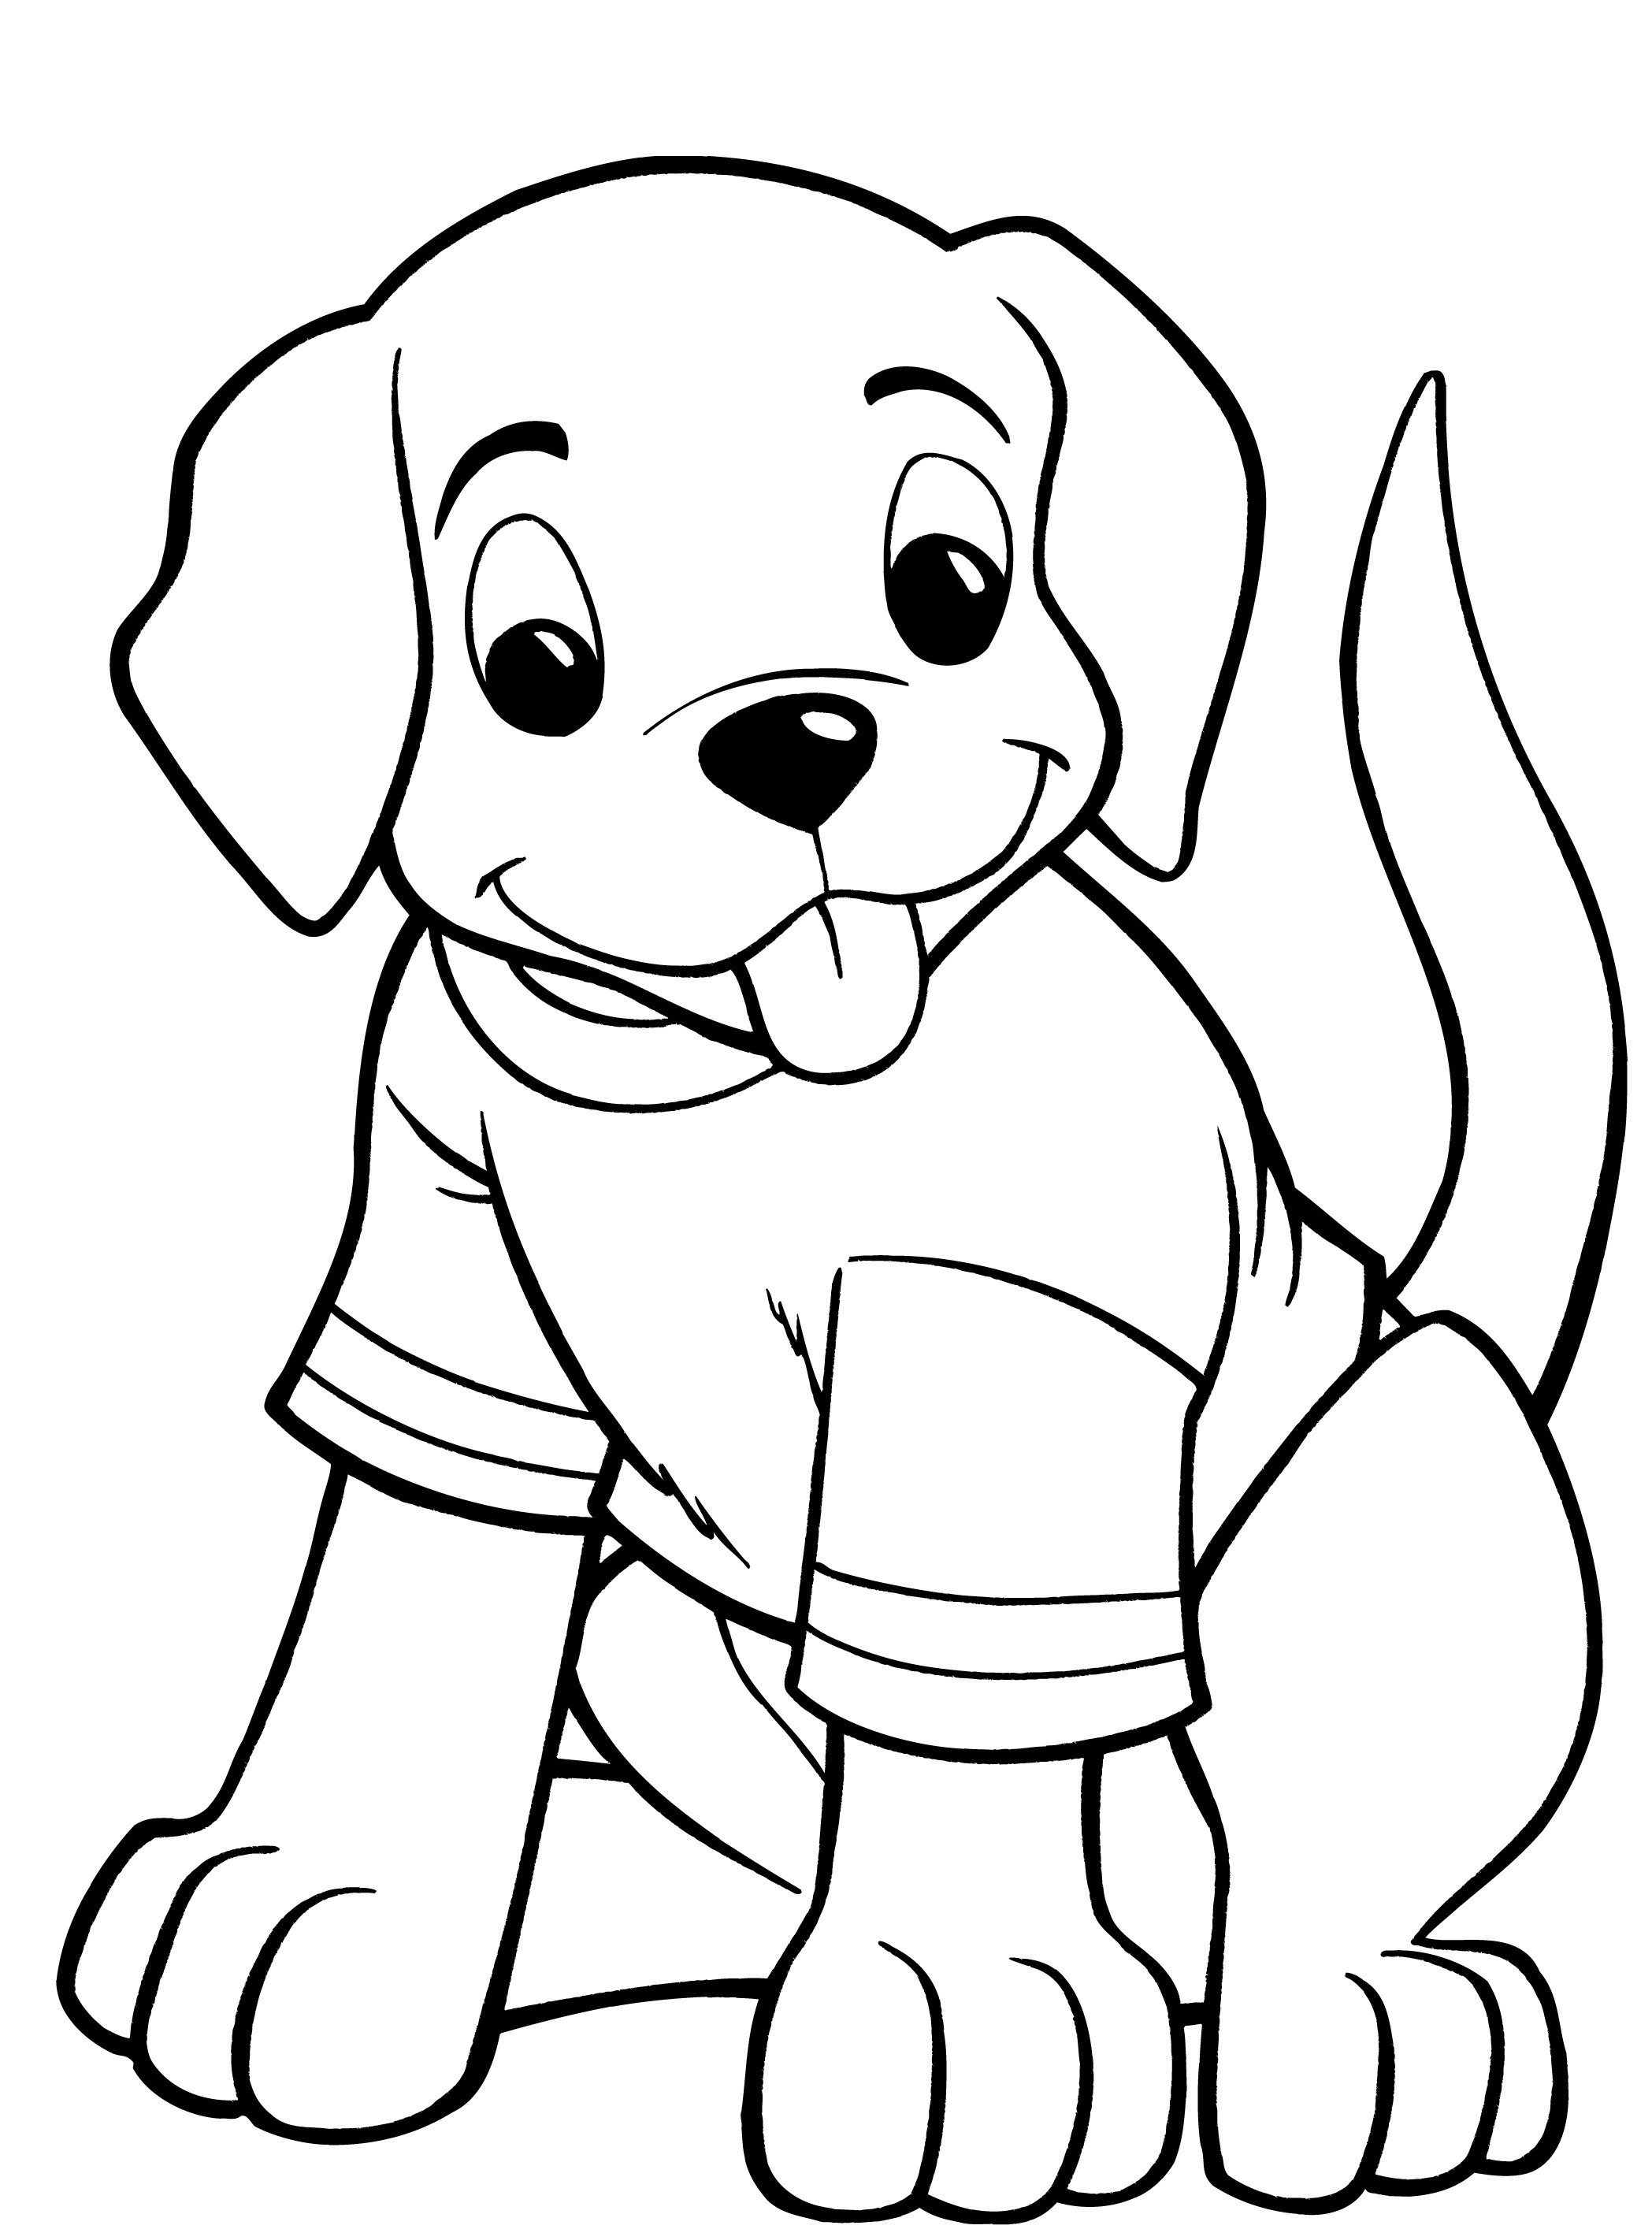 coloring pic of dog dog coloring pages for kids print them online for free pic coloring dog of